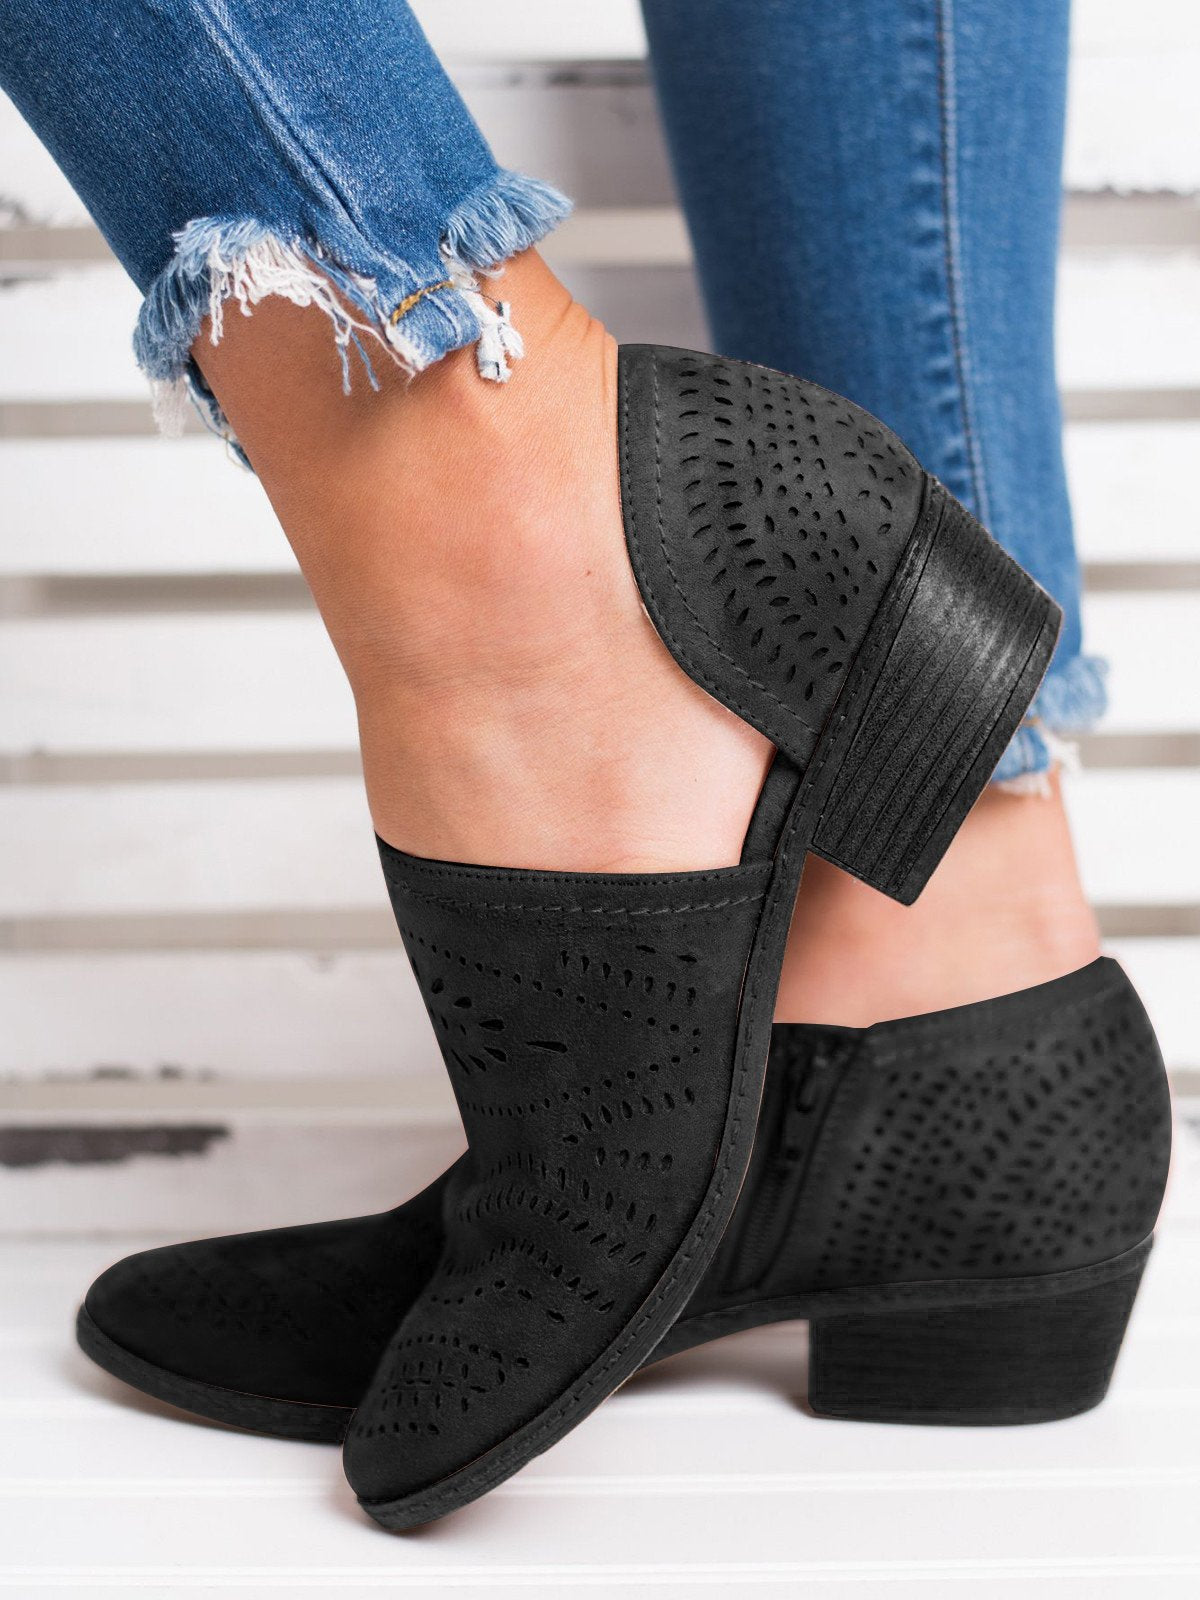 dab71e6212ff Hollow-out Low Heel Cutout Booties Faux Suede Zipper Ankle Boots ...